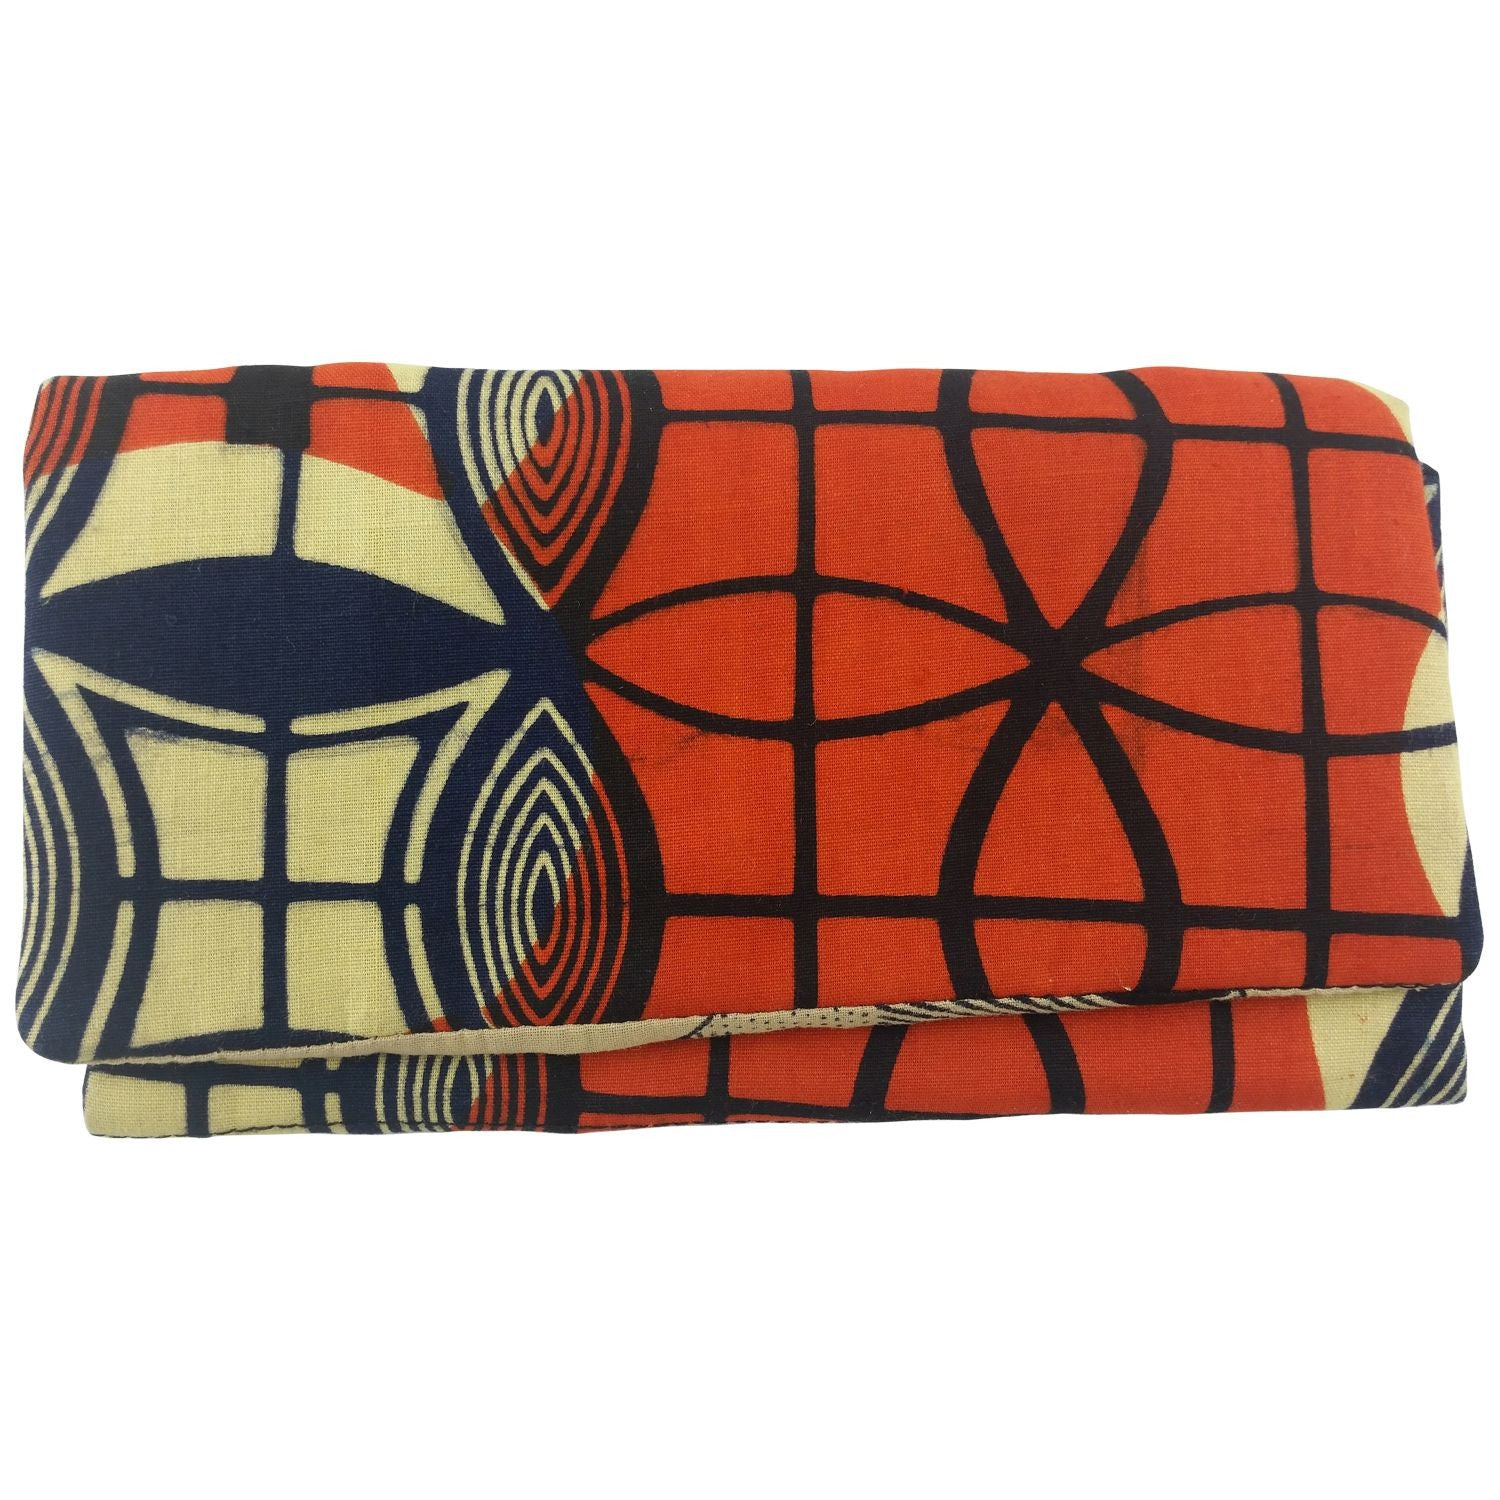 East African Kitenge Fabric Women's Wallet (Beige,Orange and Blue)